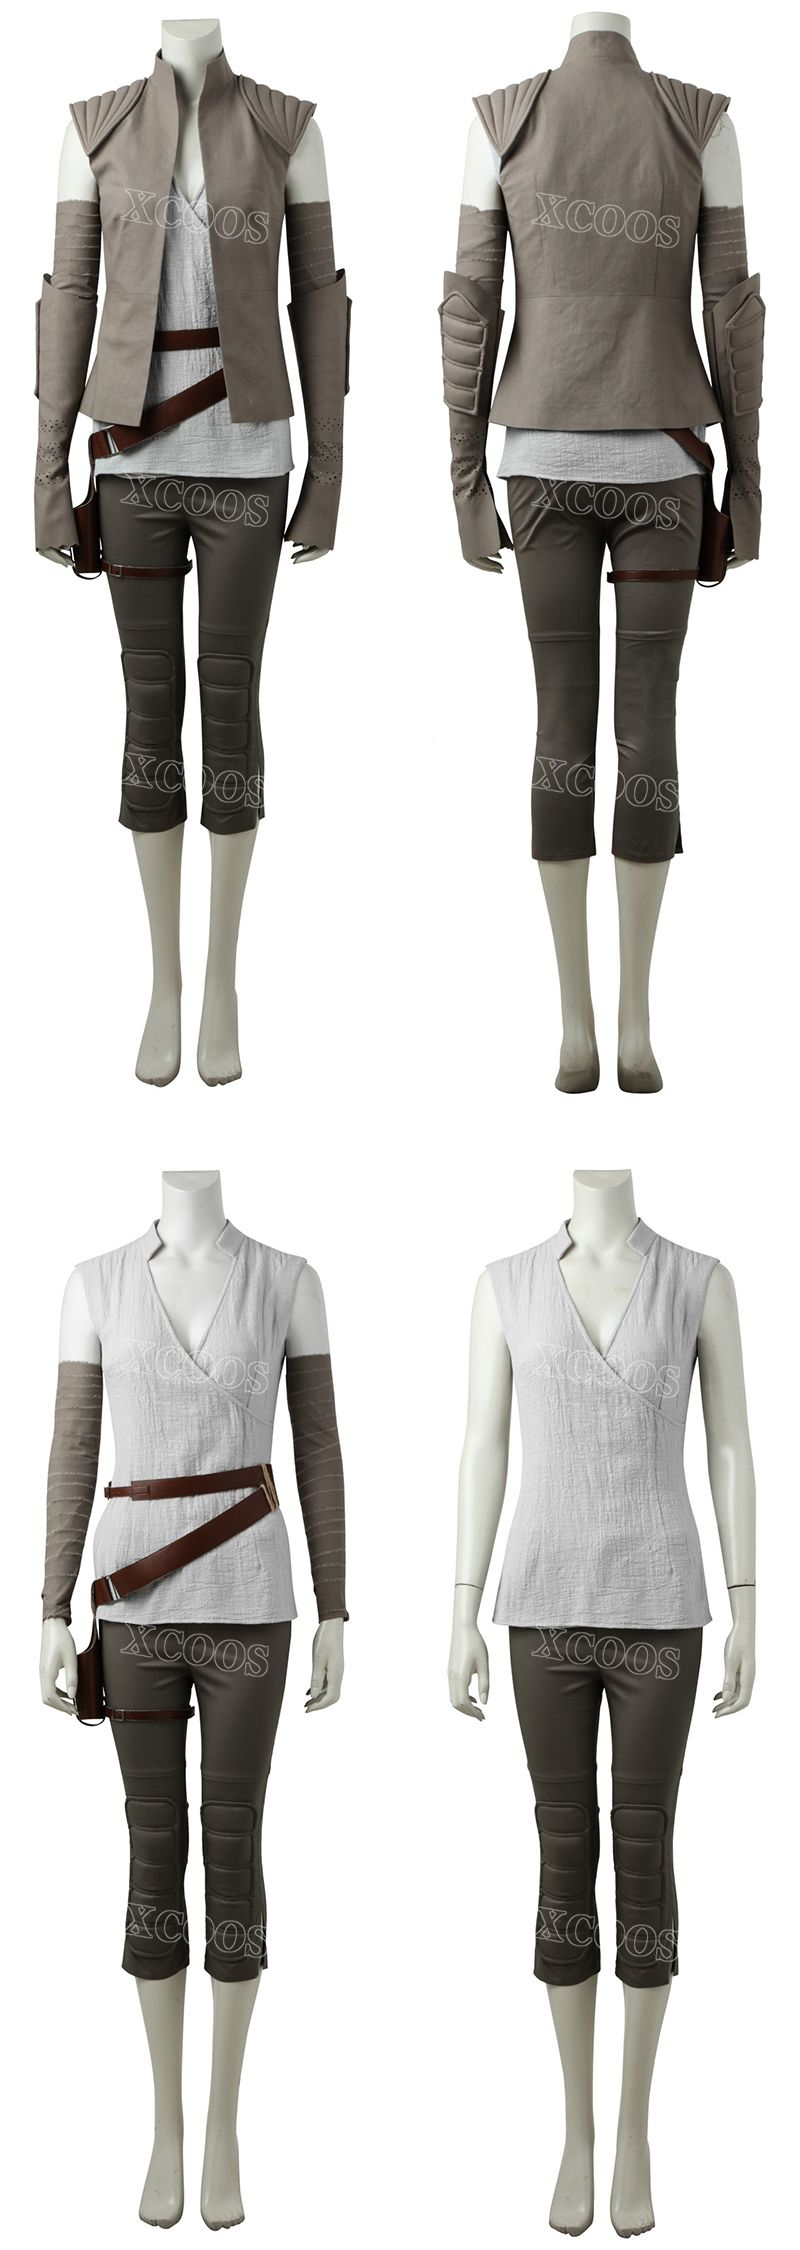 star wars 8 the last jedi rey tailored outfit kost m. Black Bedroom Furniture Sets. Home Design Ideas